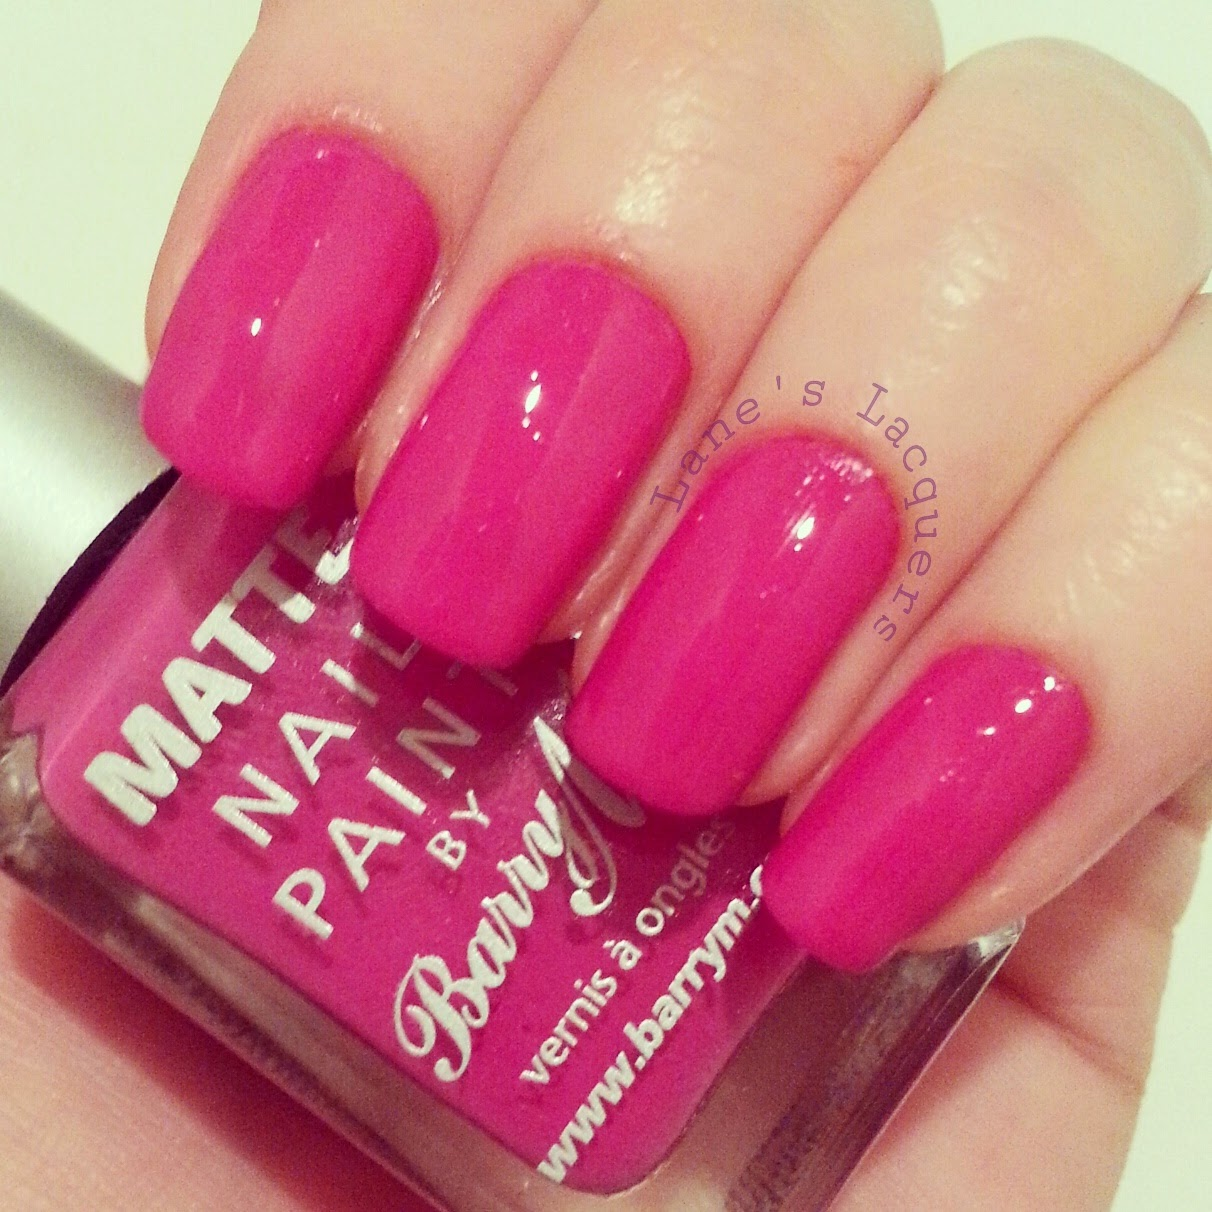 barry-m-rhossili-swatch-manicure (3)